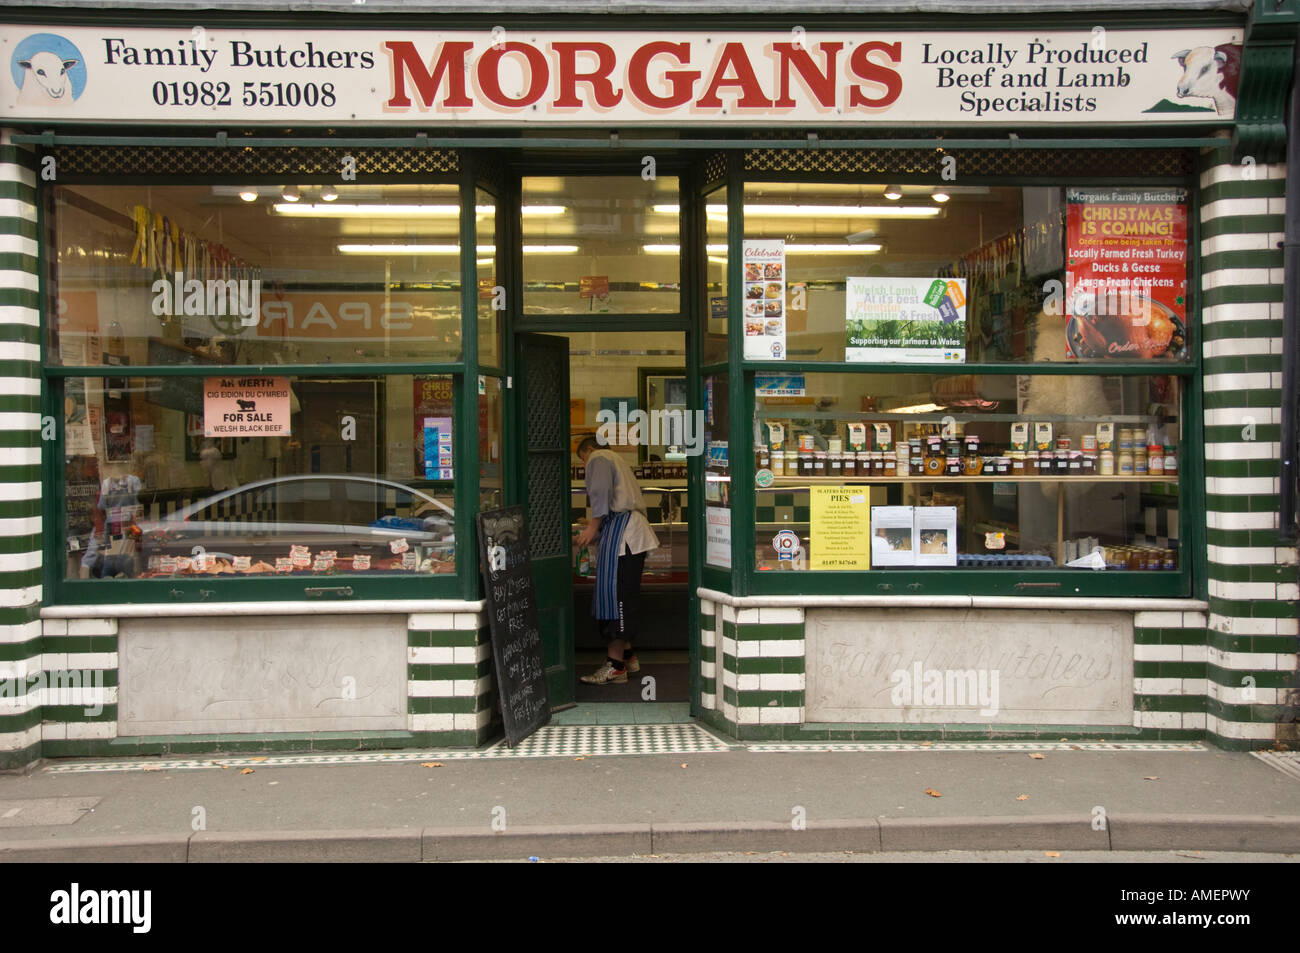 Morgans butchers shop high street Builth Wells Powys Wales UK - Stock Image